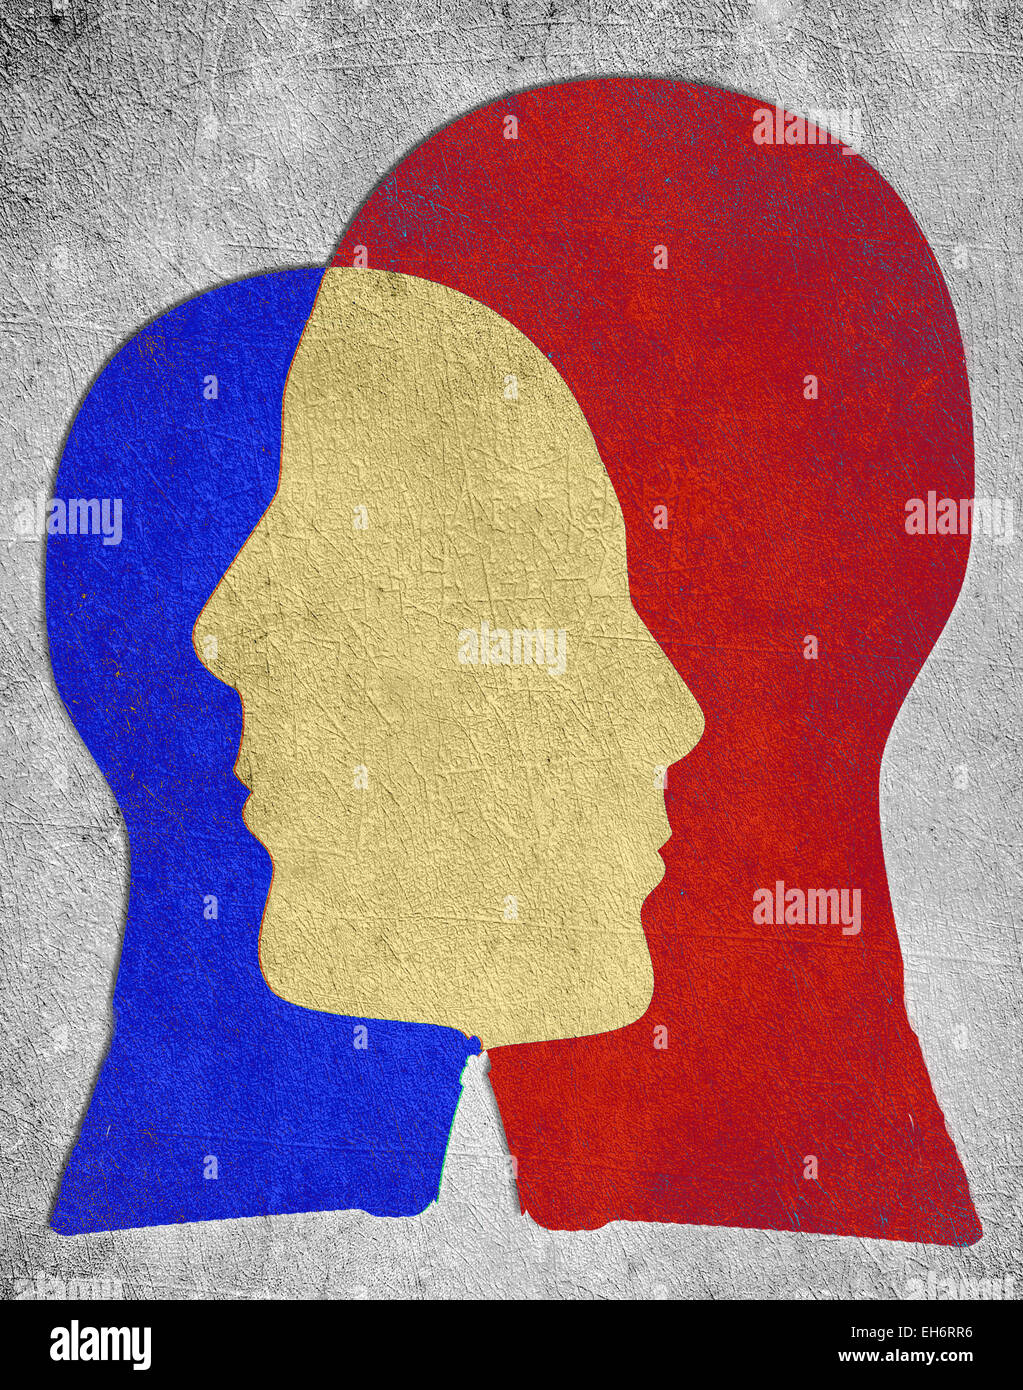 two colored head silhouette  psychology concept - Stock Image